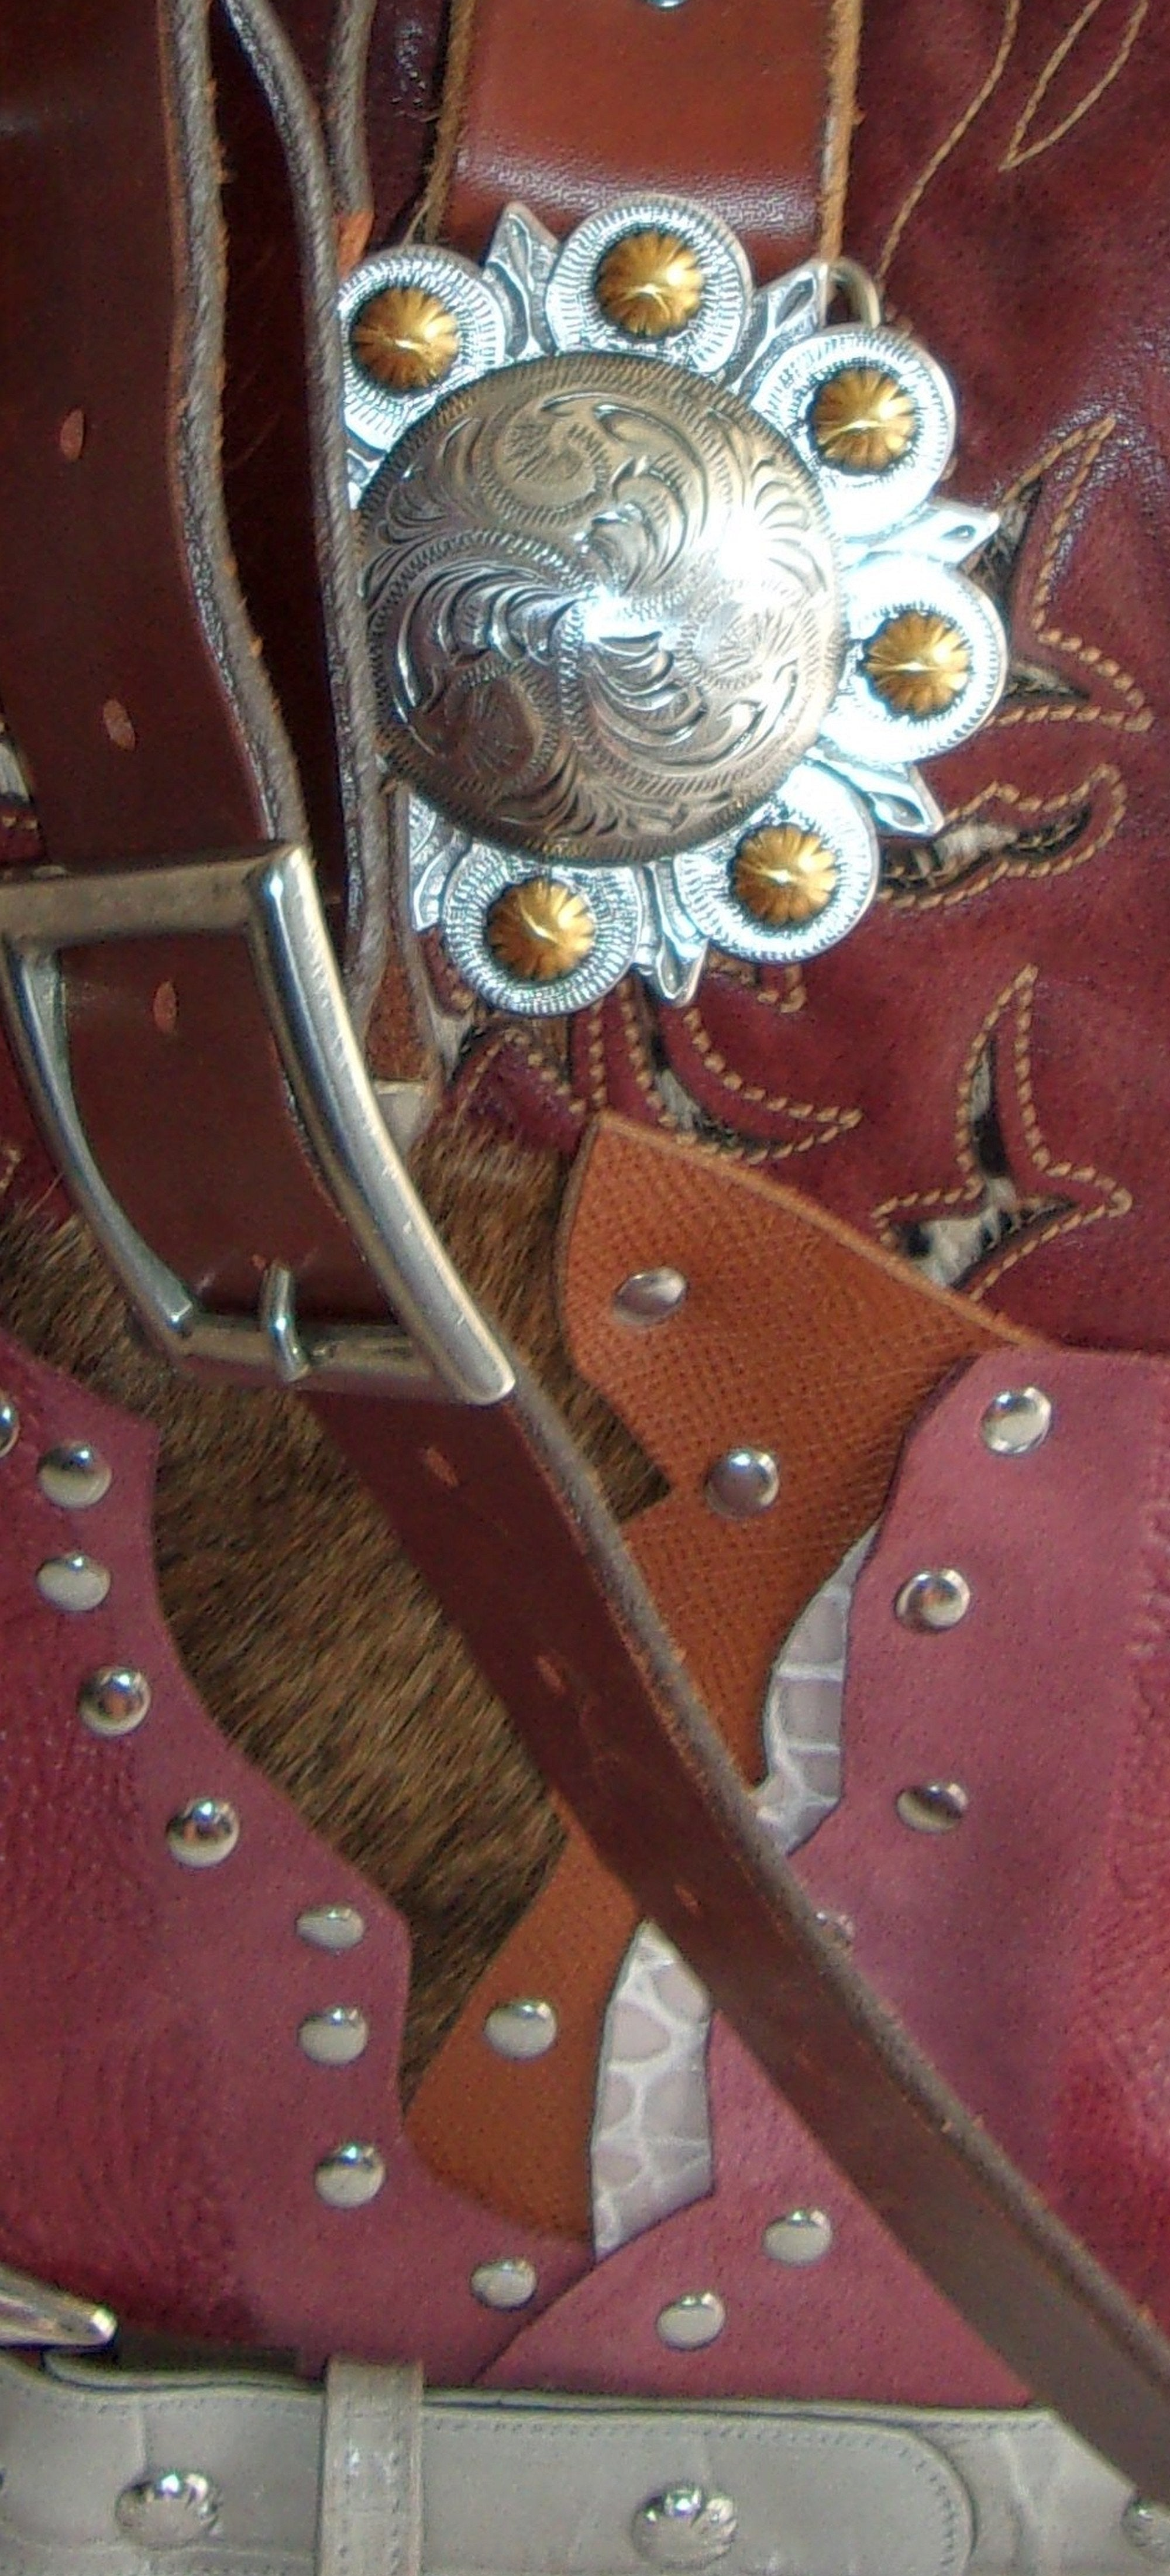 close up of ts274 red leather cheetah pattern unique leather purse handcrafted from recycled reclaimed cowboy boots